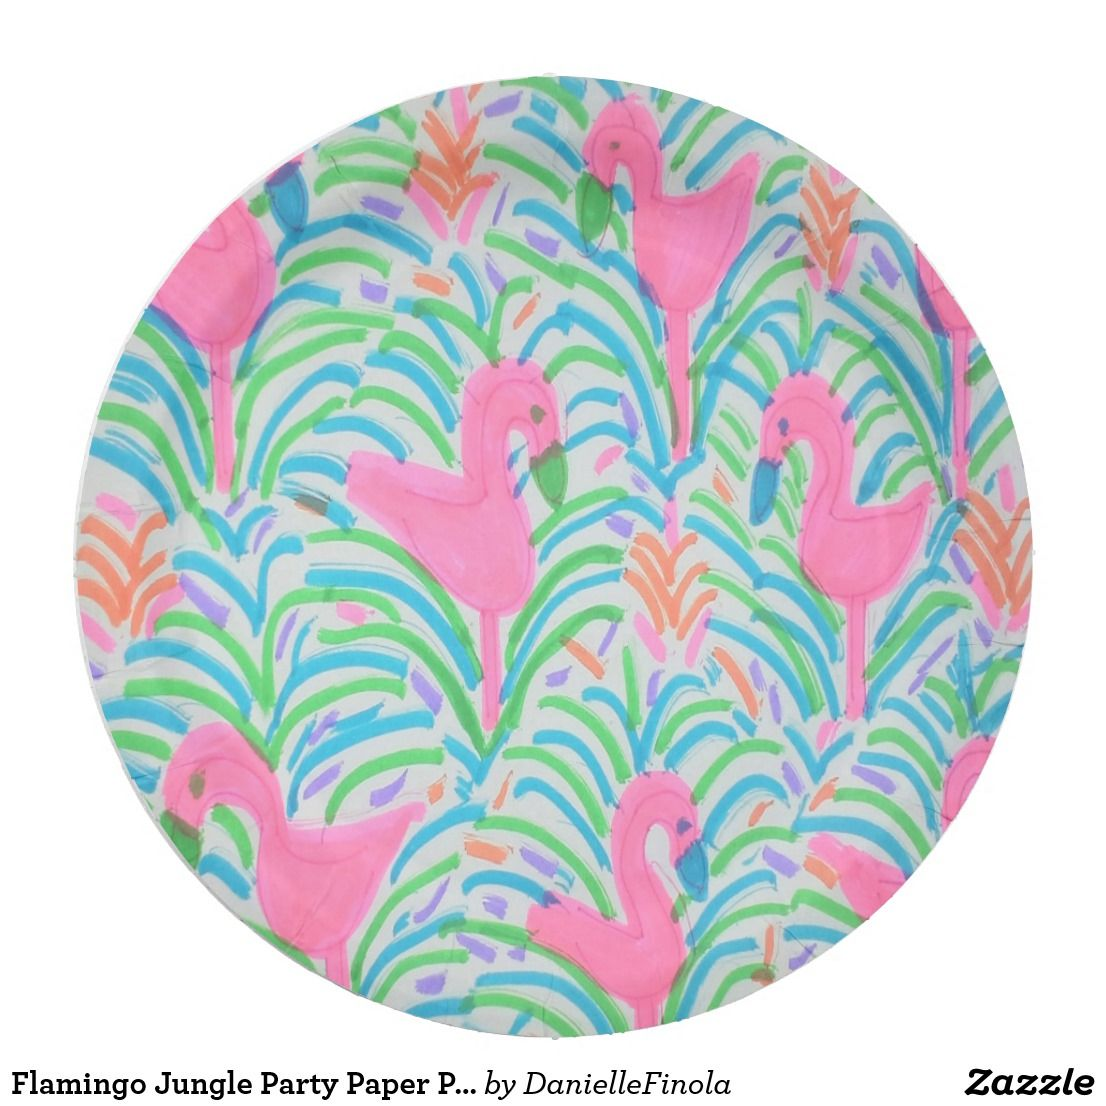 Flamingo Jungle Party Paper Plates  sc 1 st  Pinterest & Flamingo Jungle Party Paper Plates | Danielle Finola Lifestyle ...